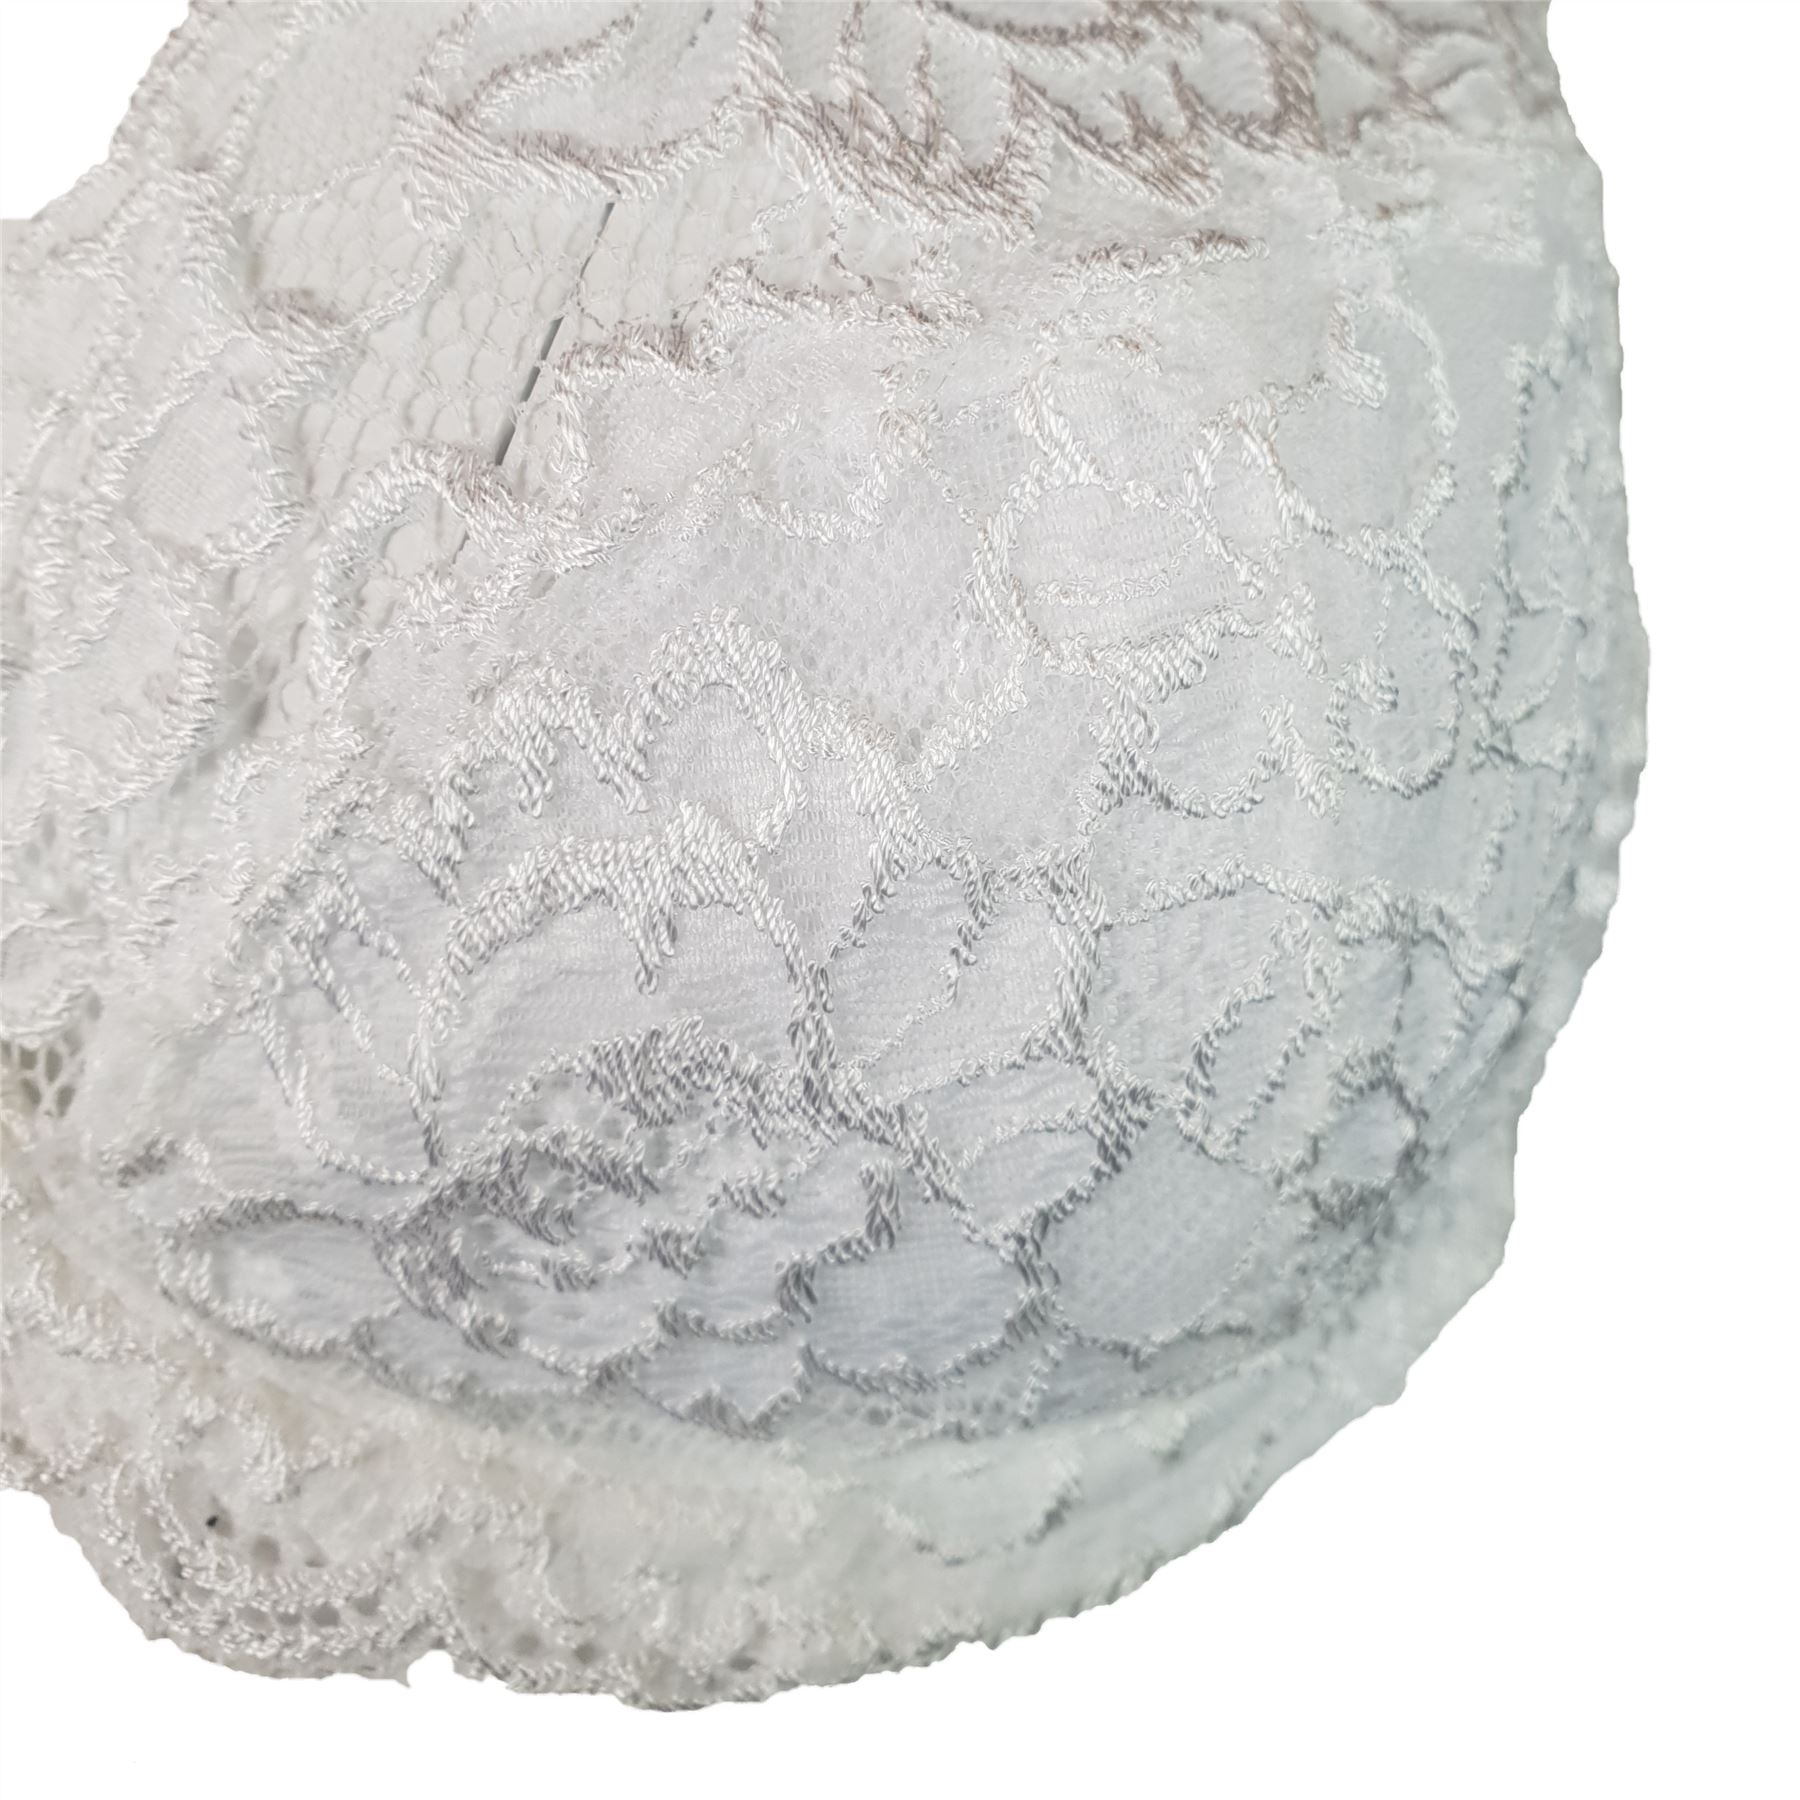 EX-M-amp-S-Marks-And-Spencer-Embroidered-White-Classic-Lace-Full-Cup-Bra thumbnail 4